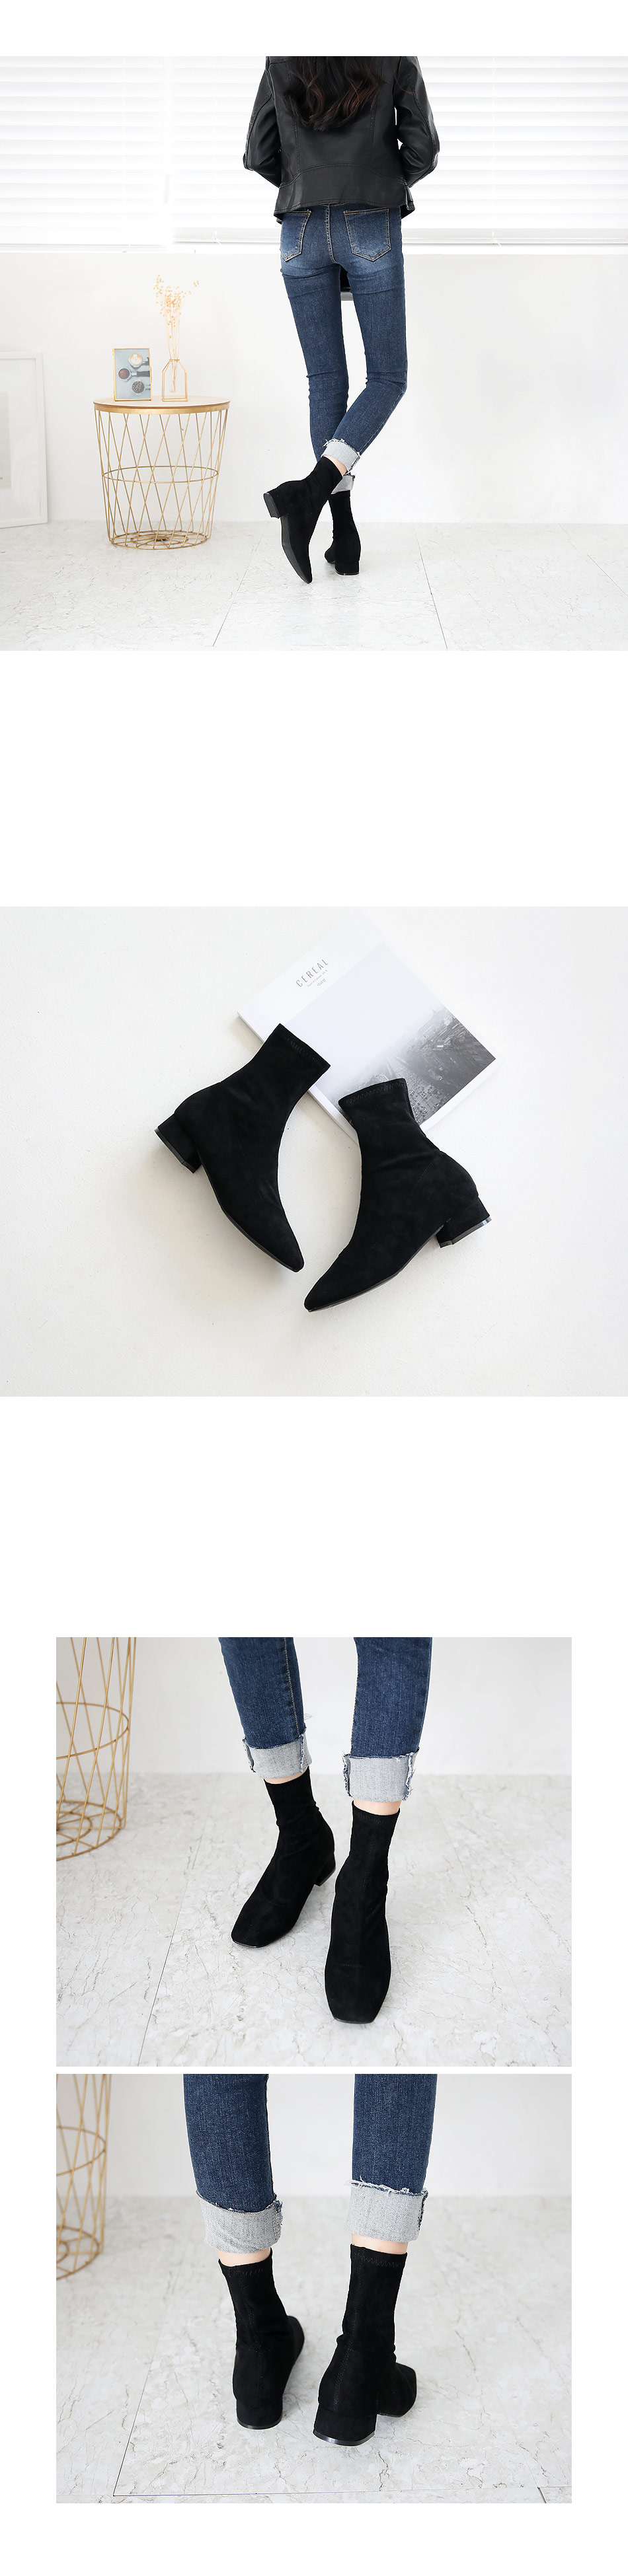 Tofin sox ankle boots 3,5 cm